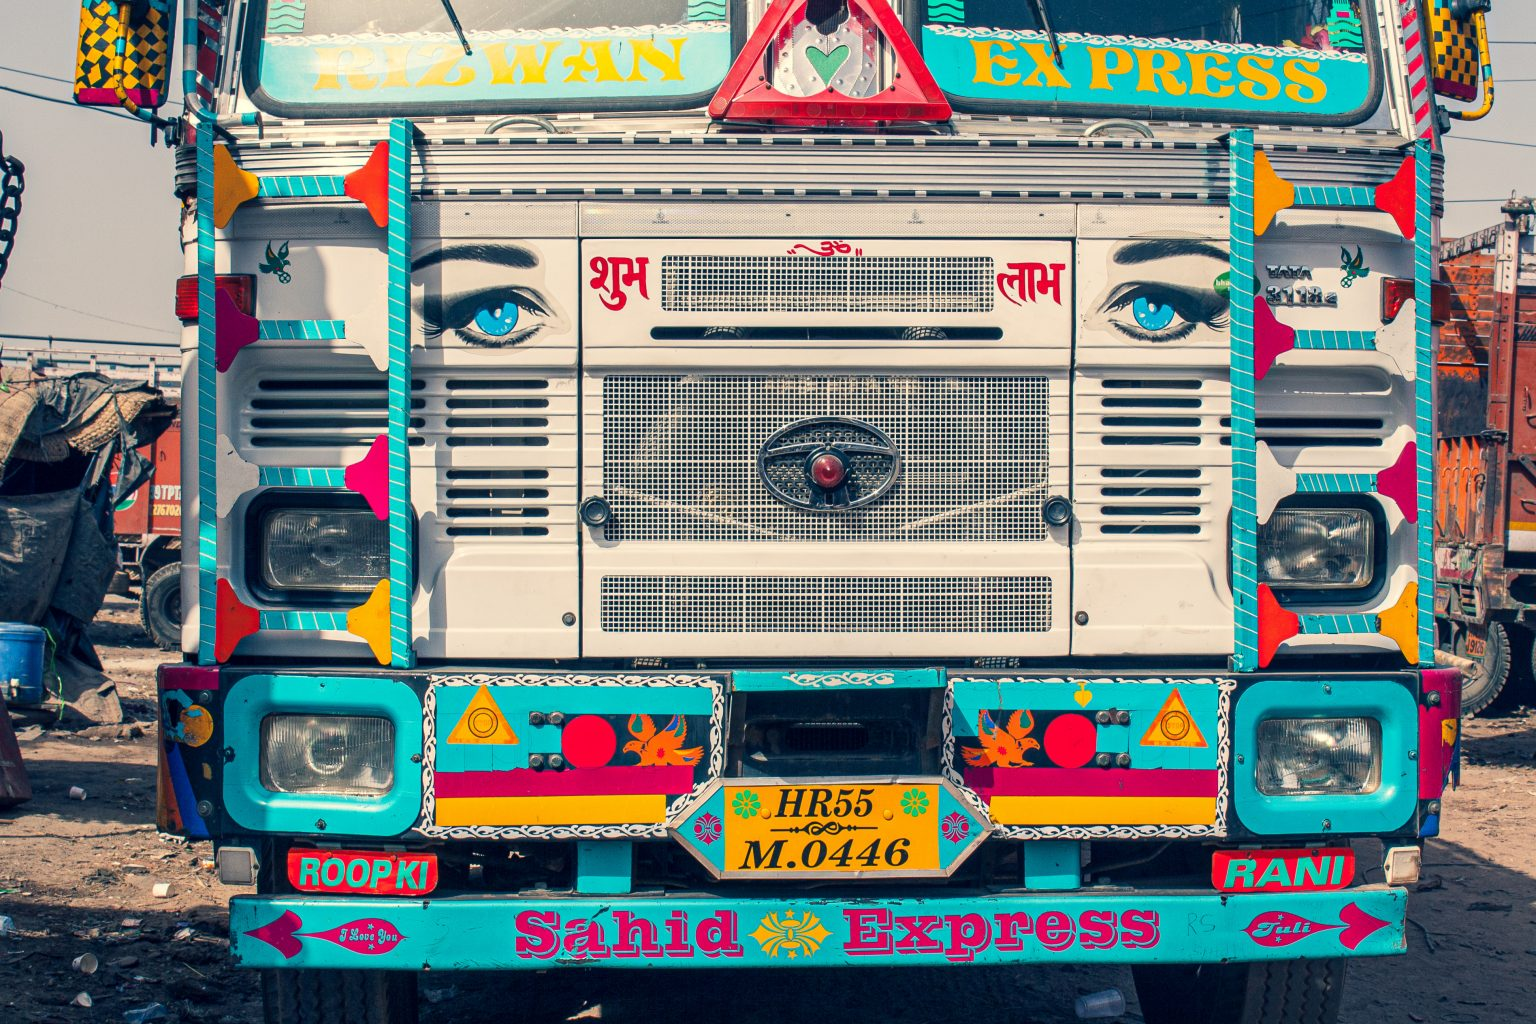 Image: Front of a truck